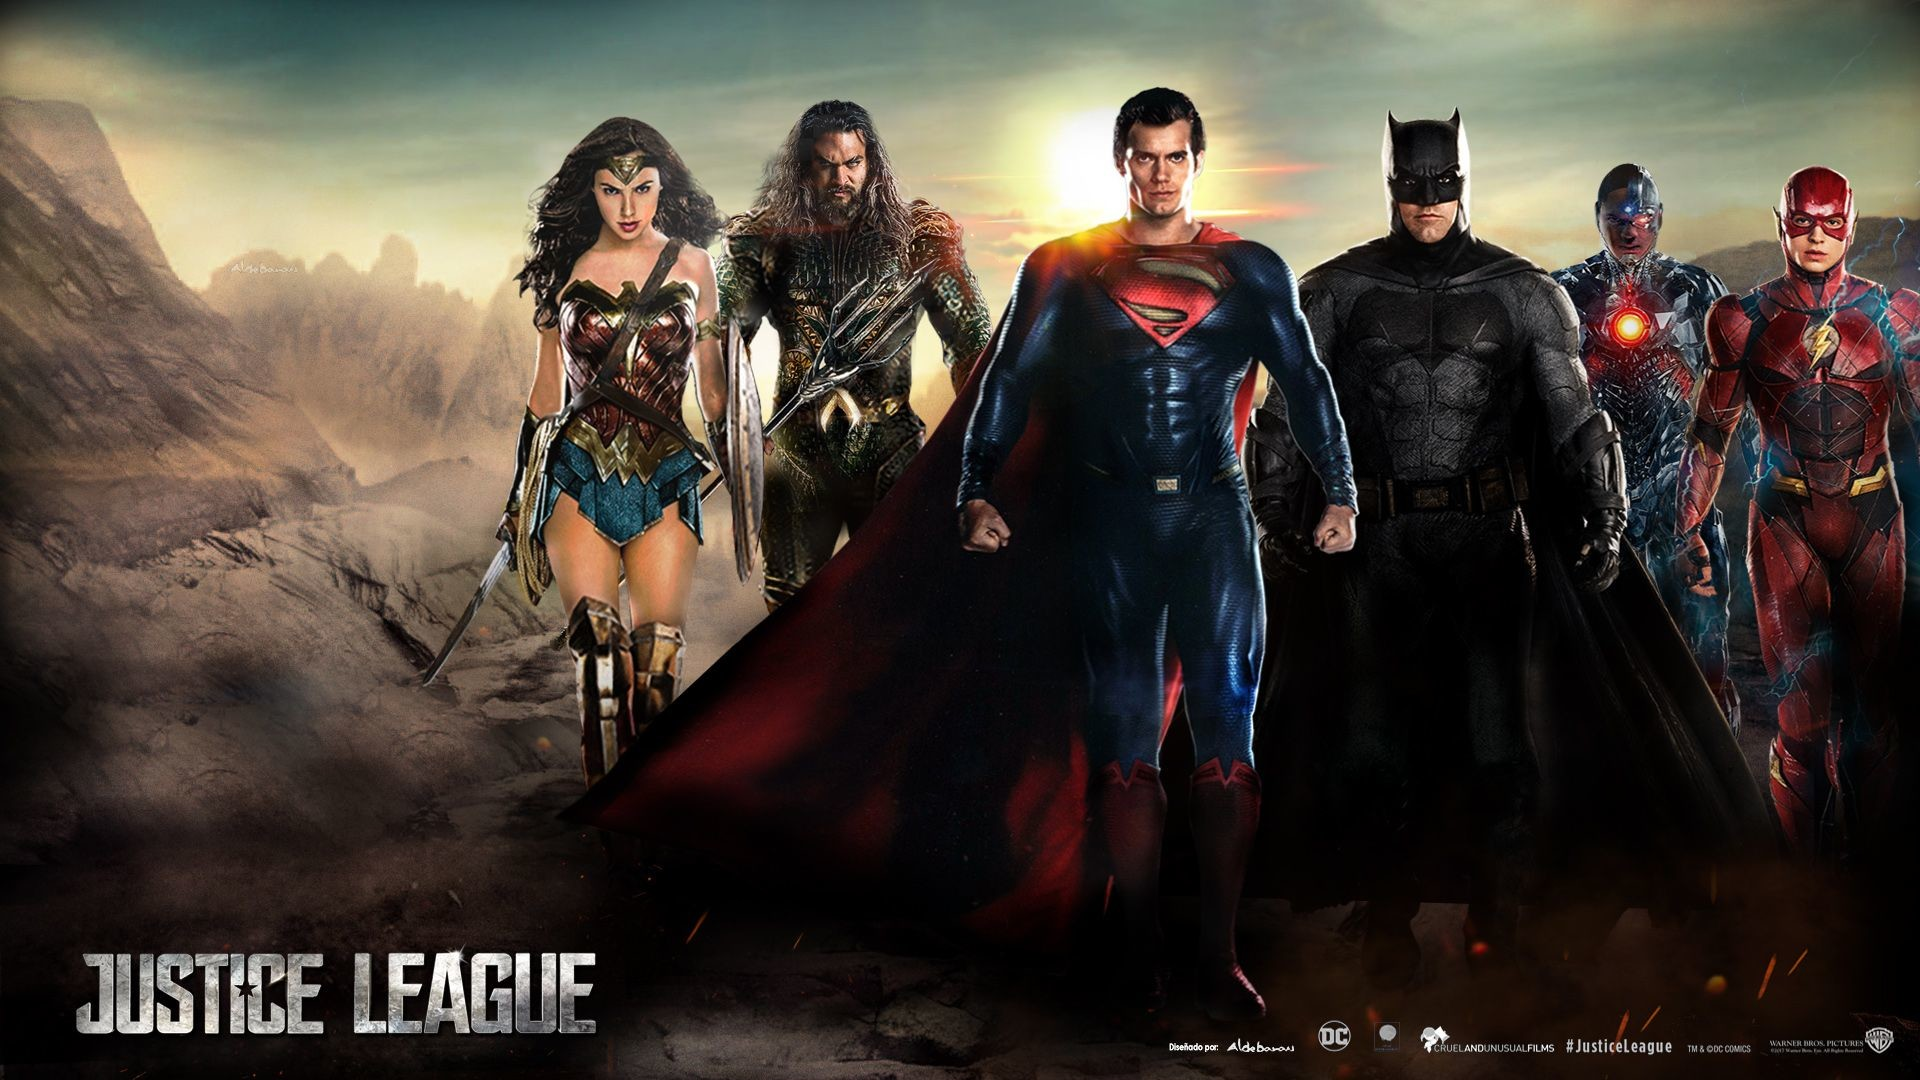 Hd Wallpaper 1920x1080 Of Movies 88 Images